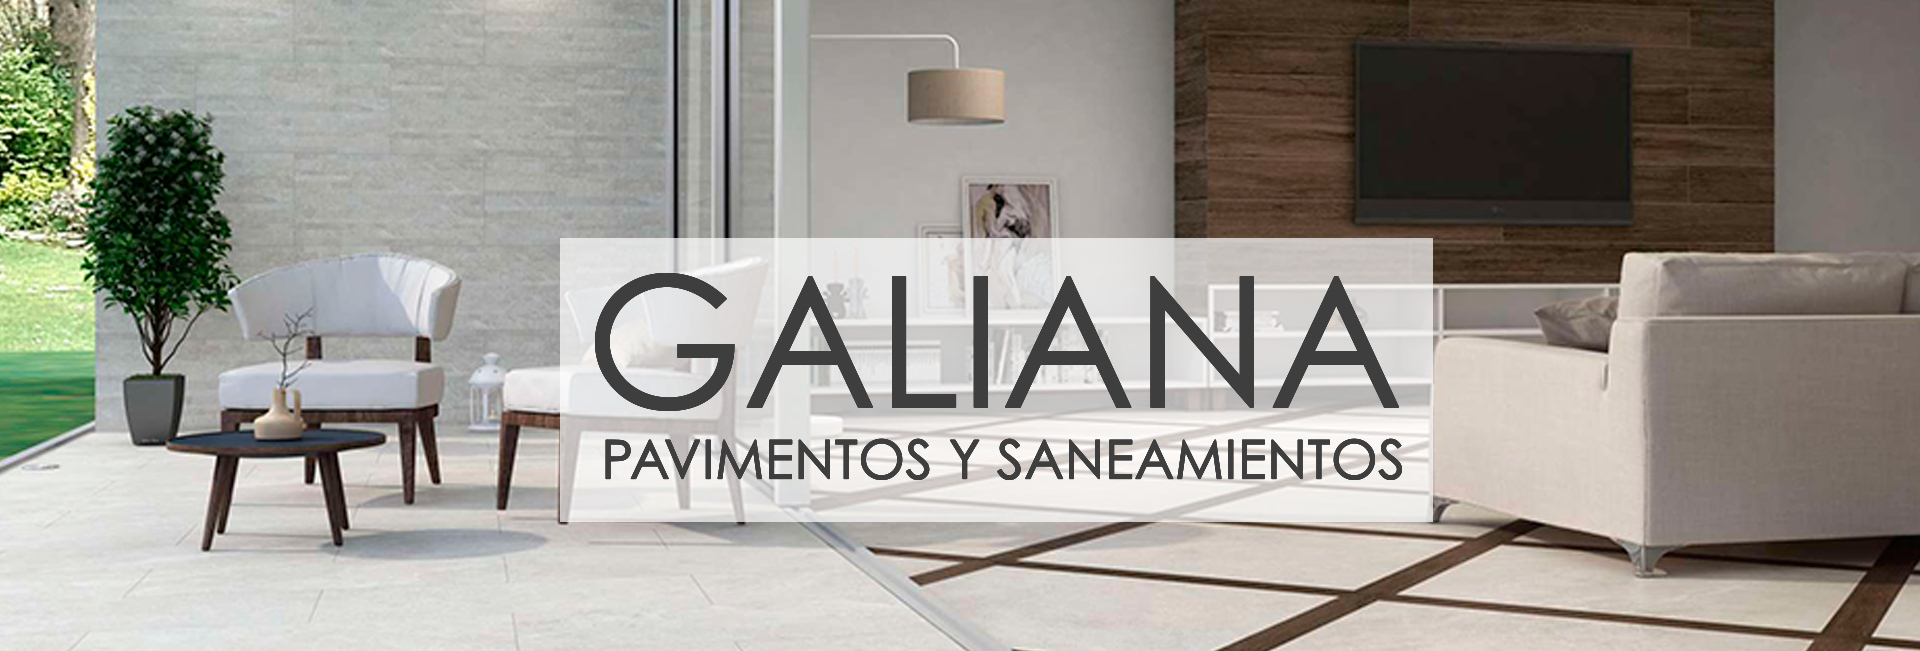 slider1 Galiana